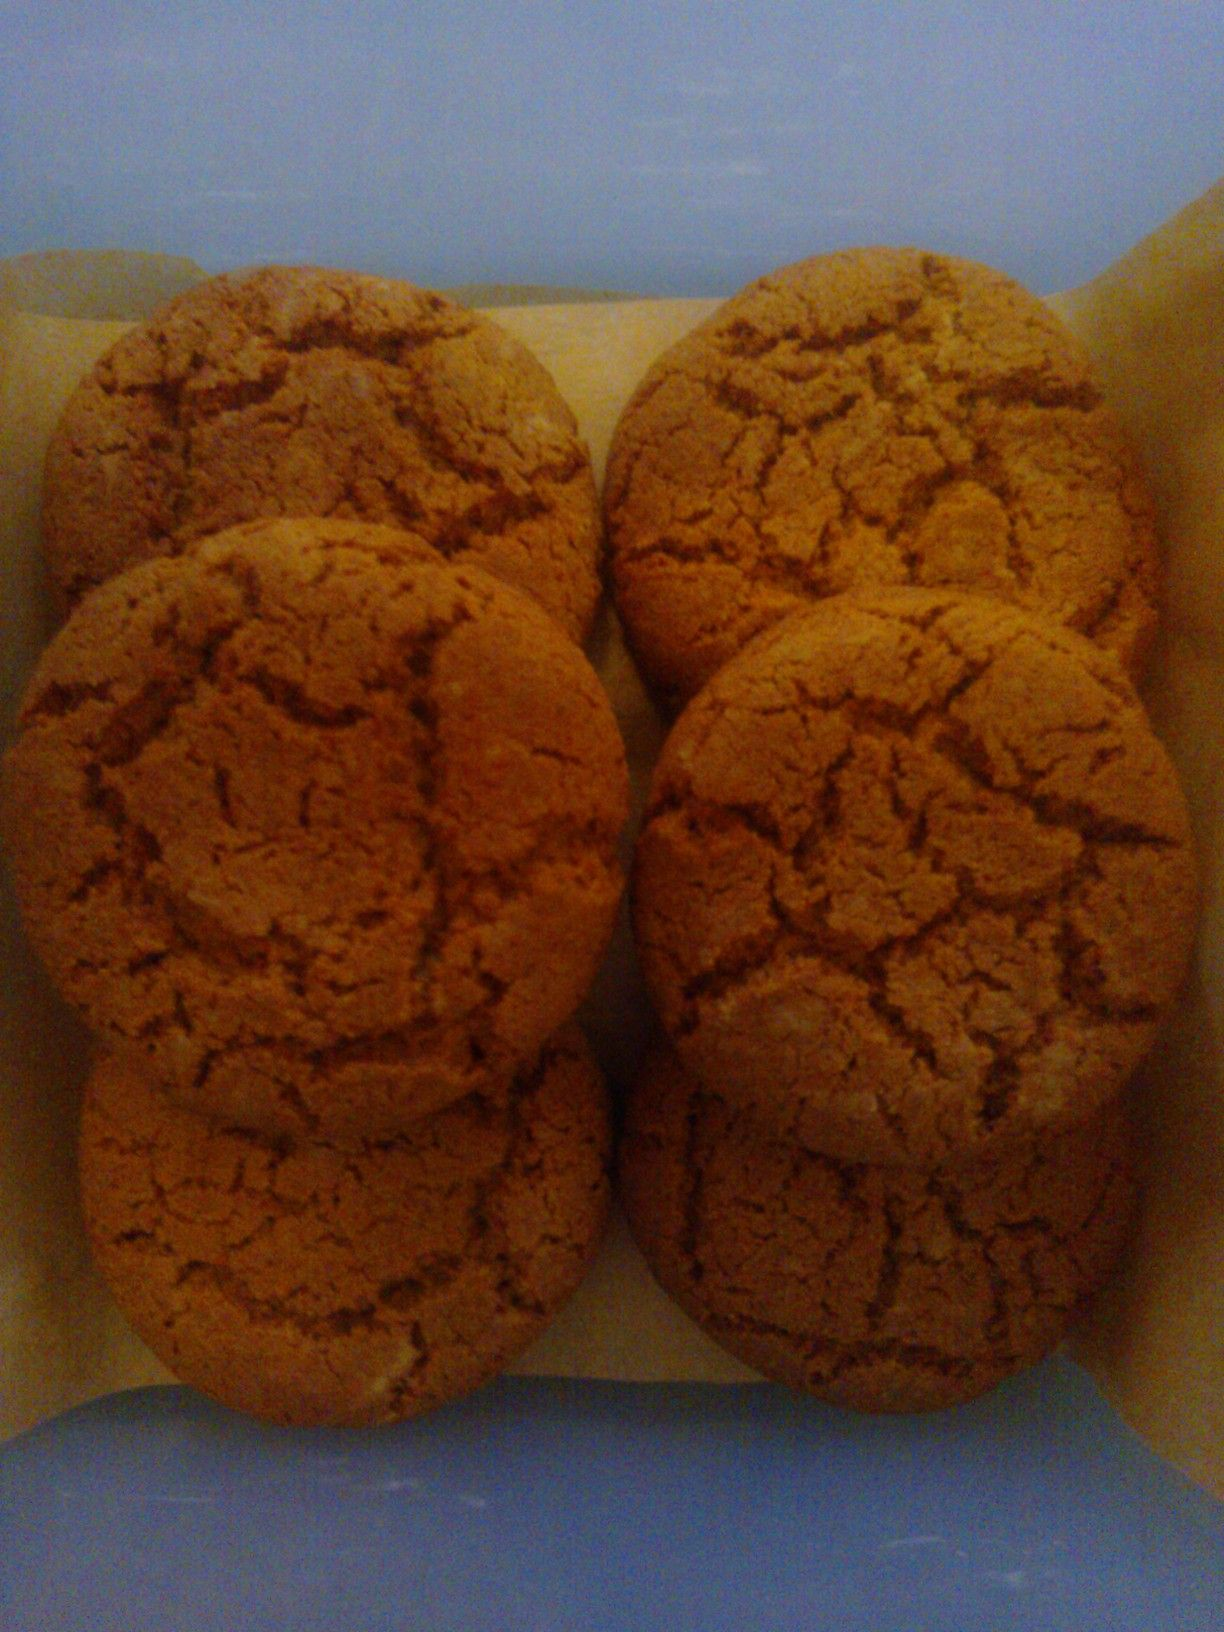 My homemade Ginger Nuts